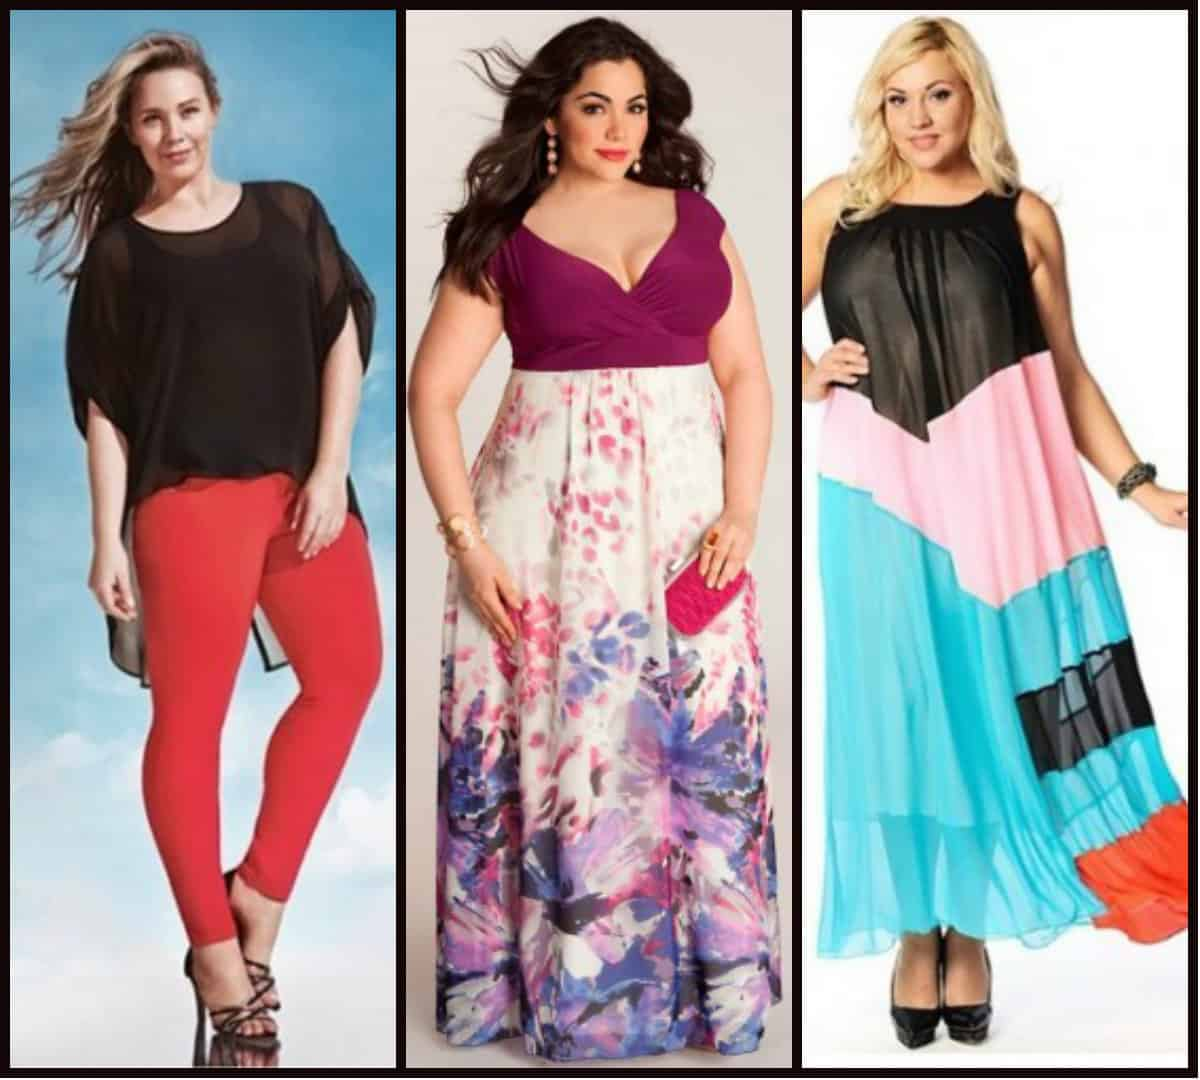 Women's-plus-size-clothing-trends-Spring-Summer-2016-1